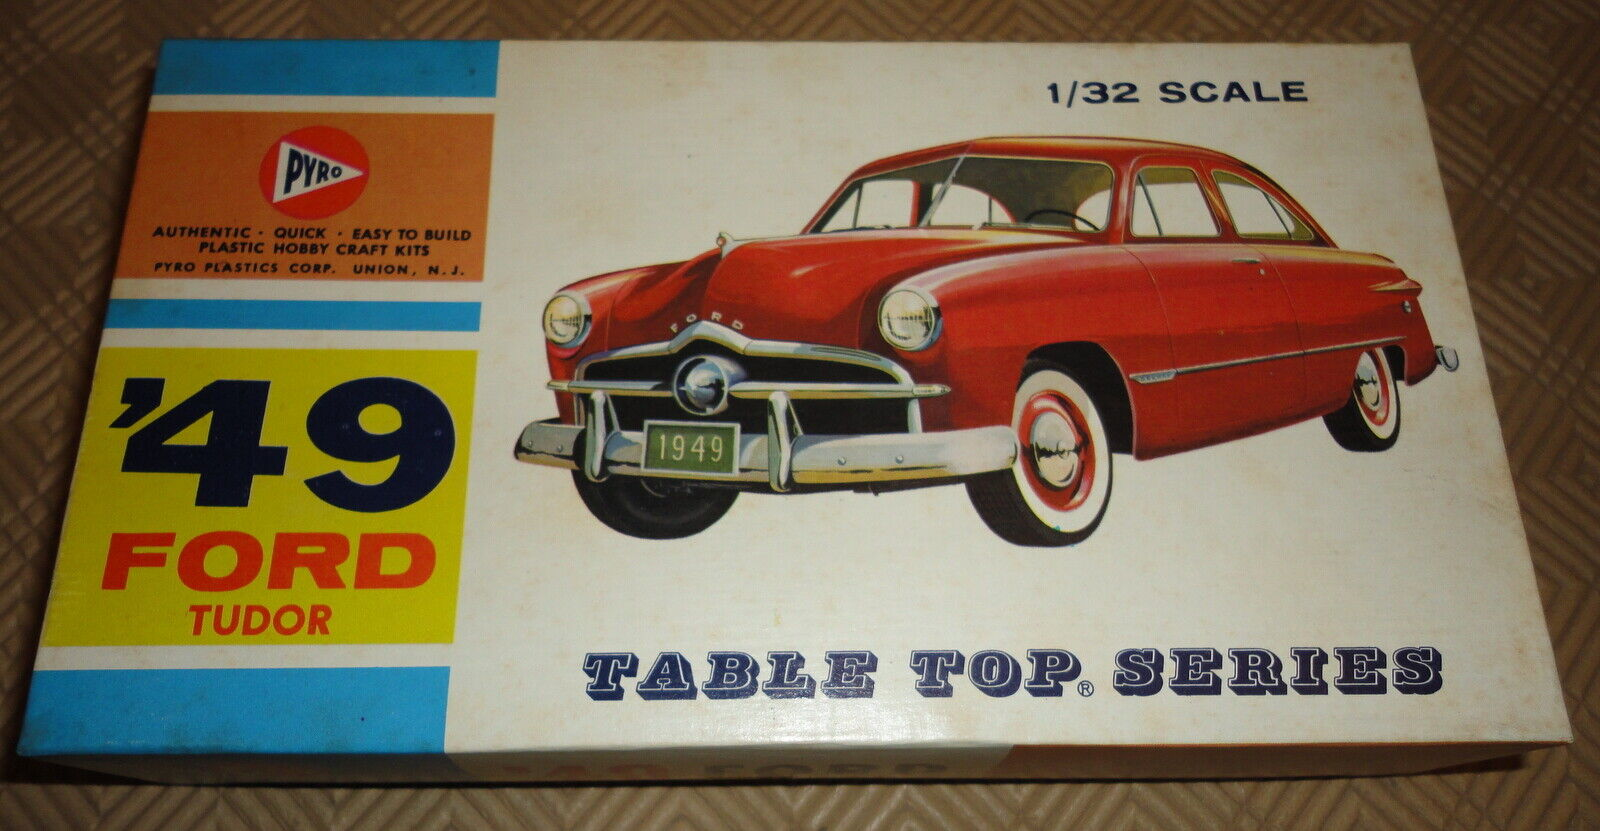 Pyro 1 32 '49 FORD TUDOR  TABLE TOP SERIES  C290-50